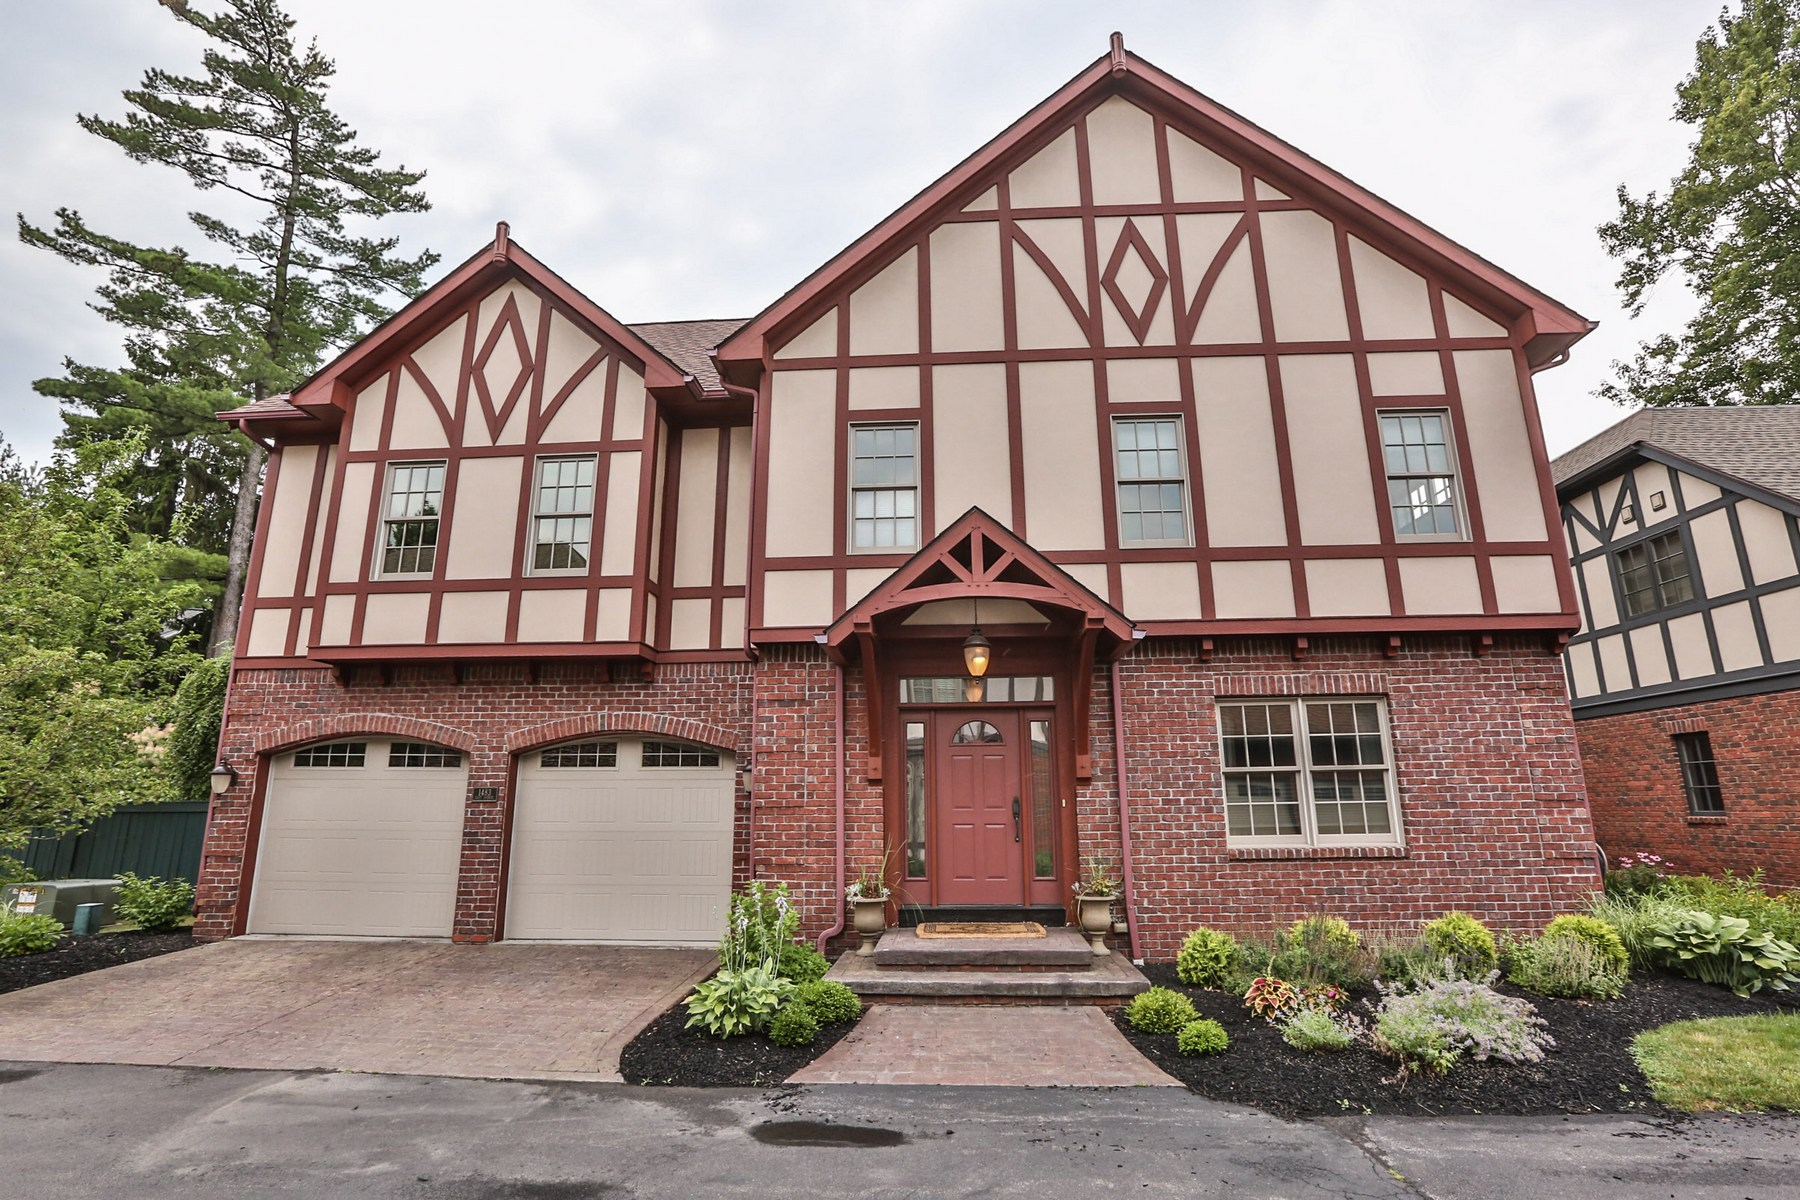 Single Family Home for Sale at Elegant Town Home in the Tudors on East! 1483 East Ave Ave Rochester, New York 14610 United States